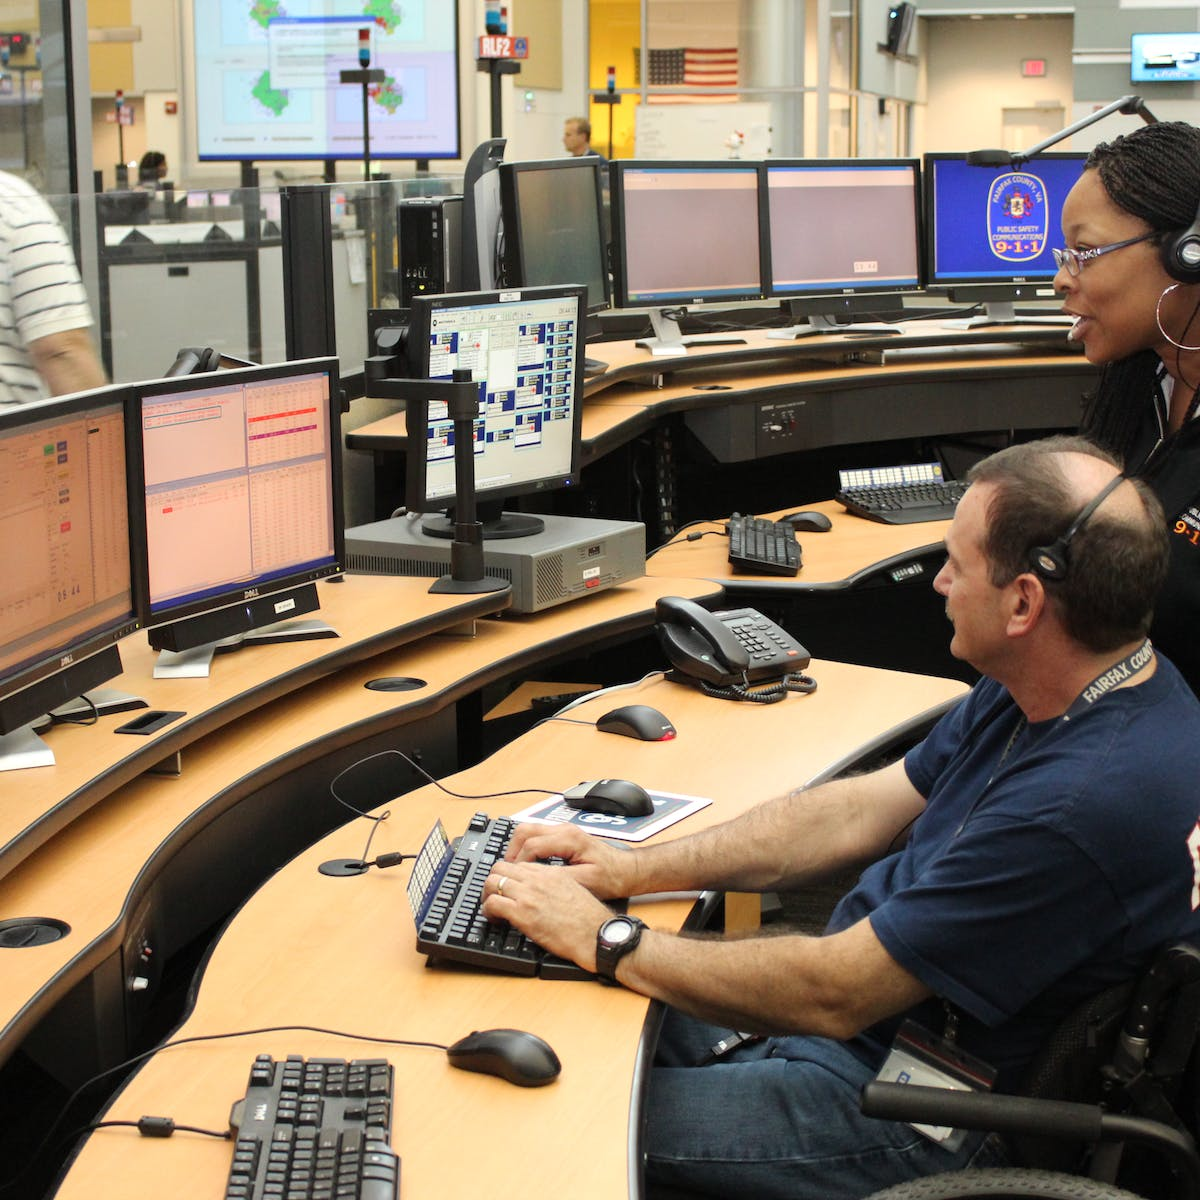 Attackers can make it impossible to dial 911